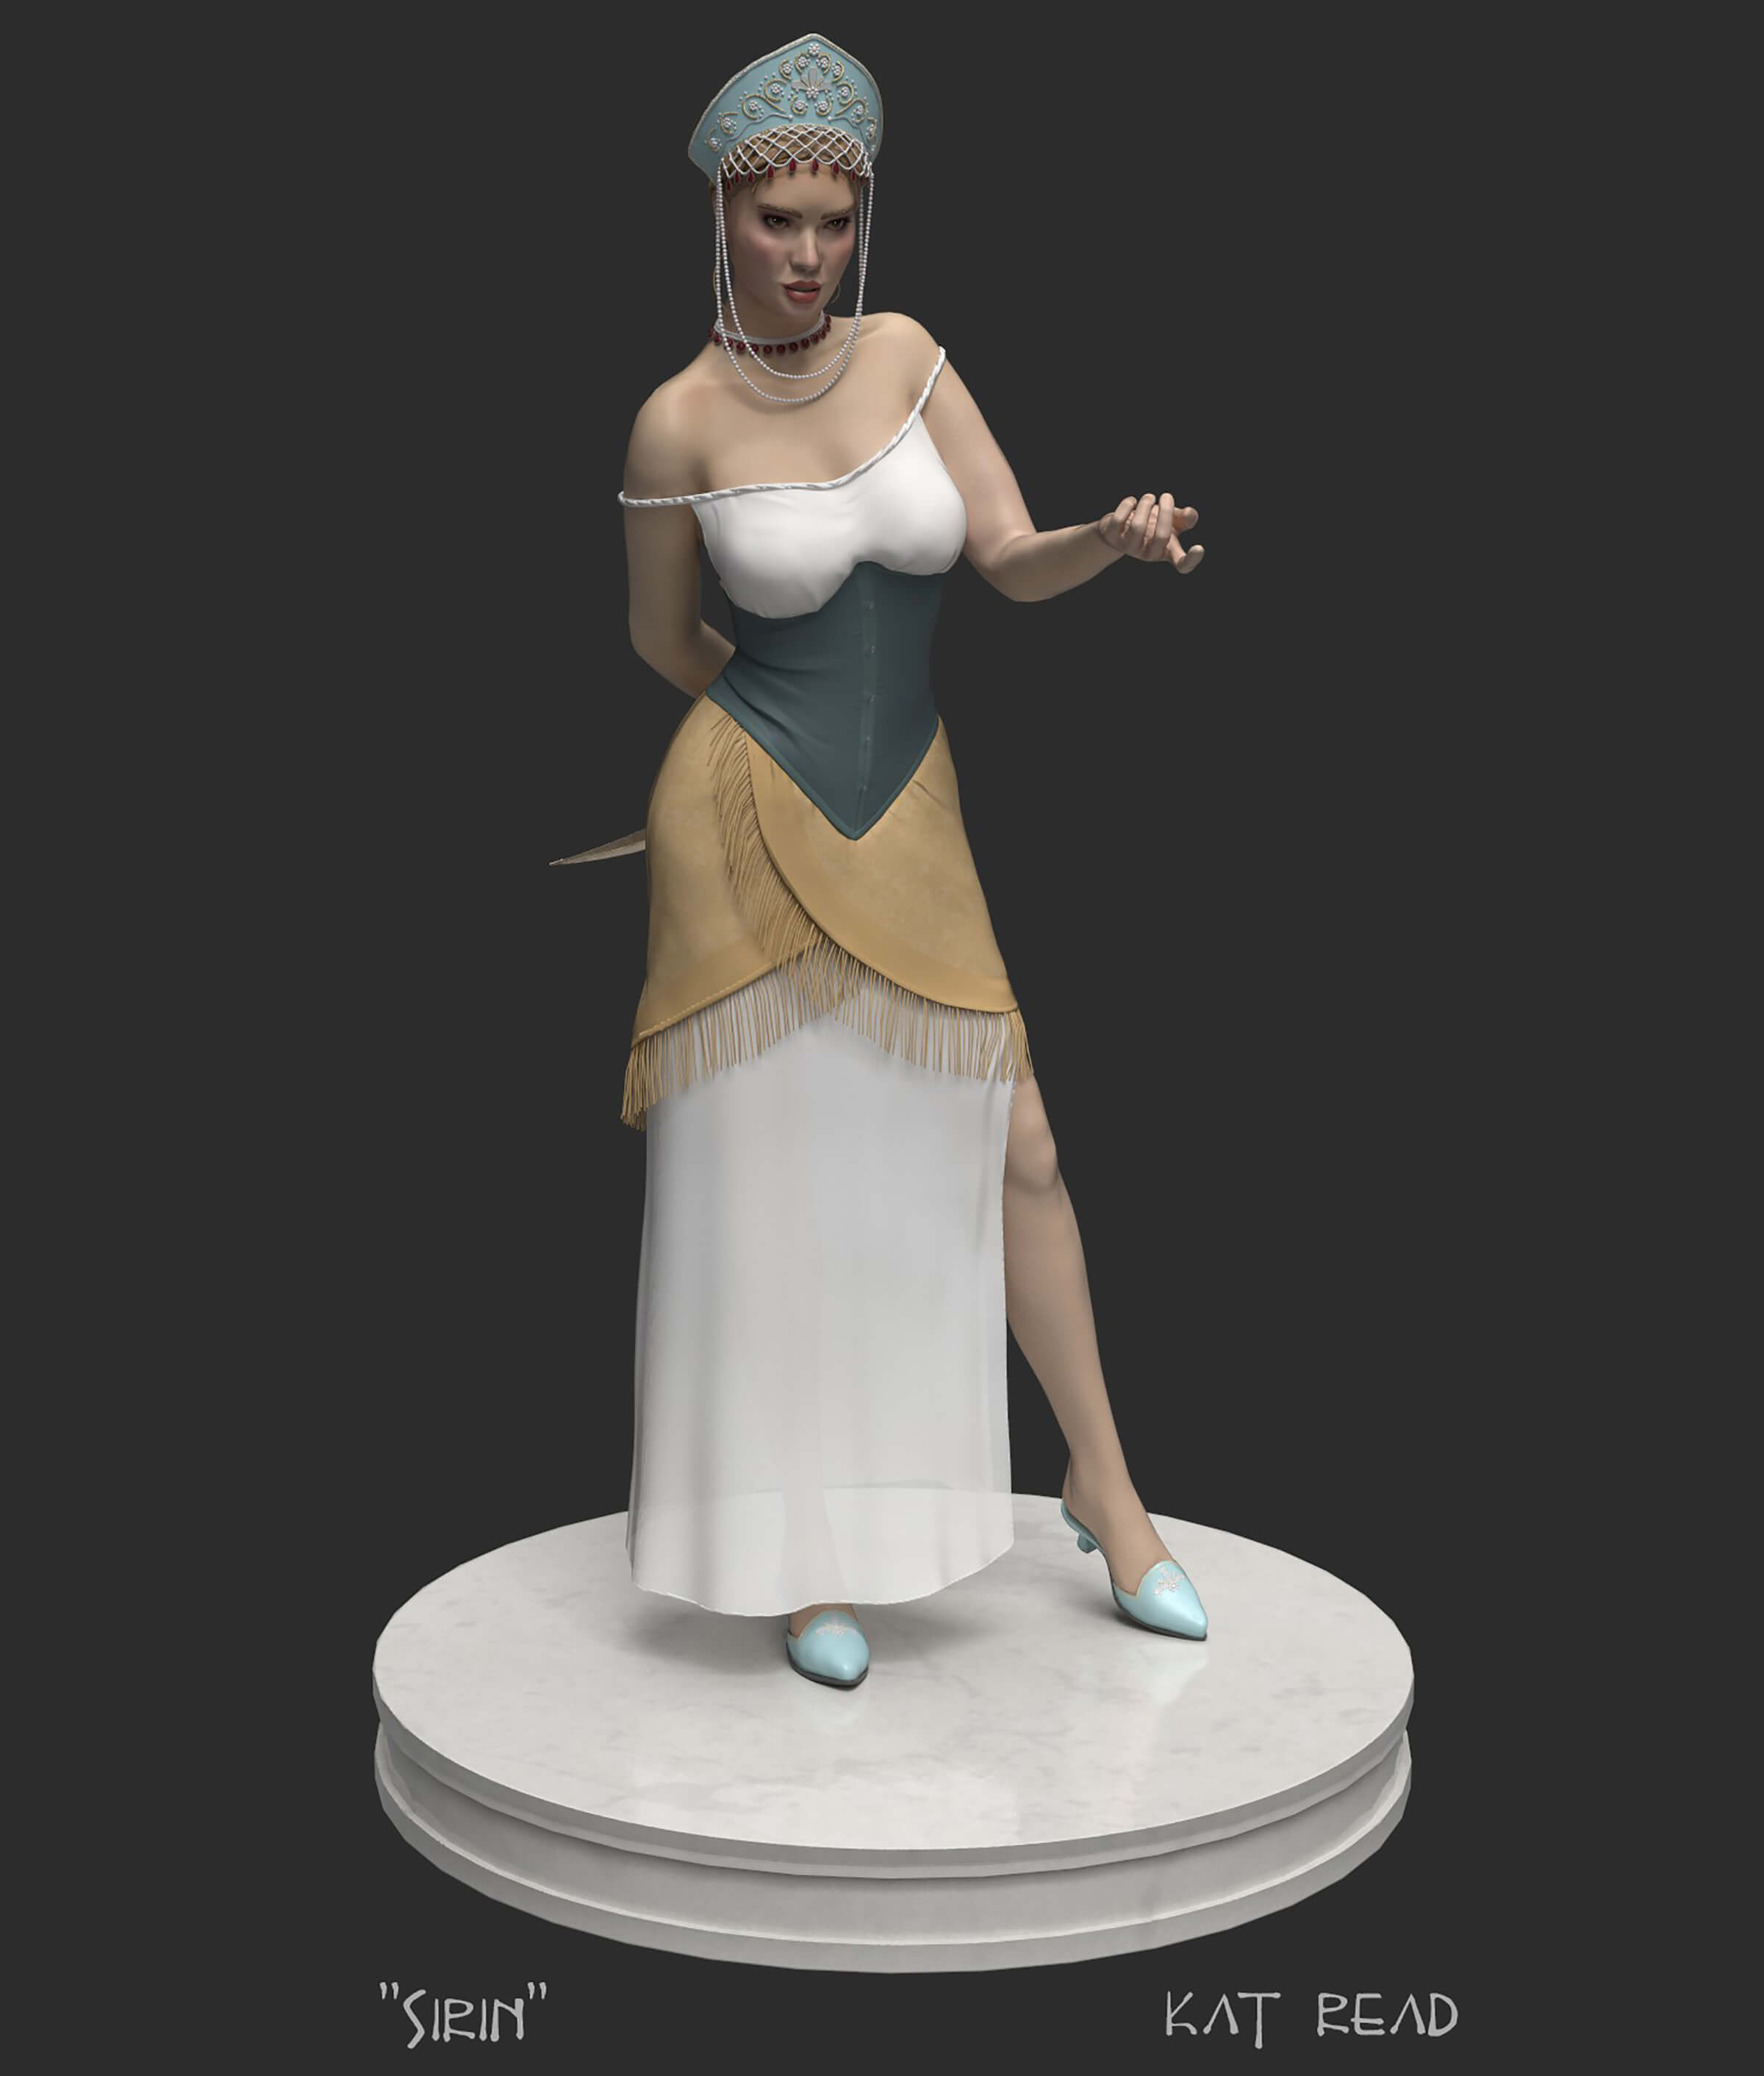 computer-generated 3D model of a female character named sirin on a marble pedestal